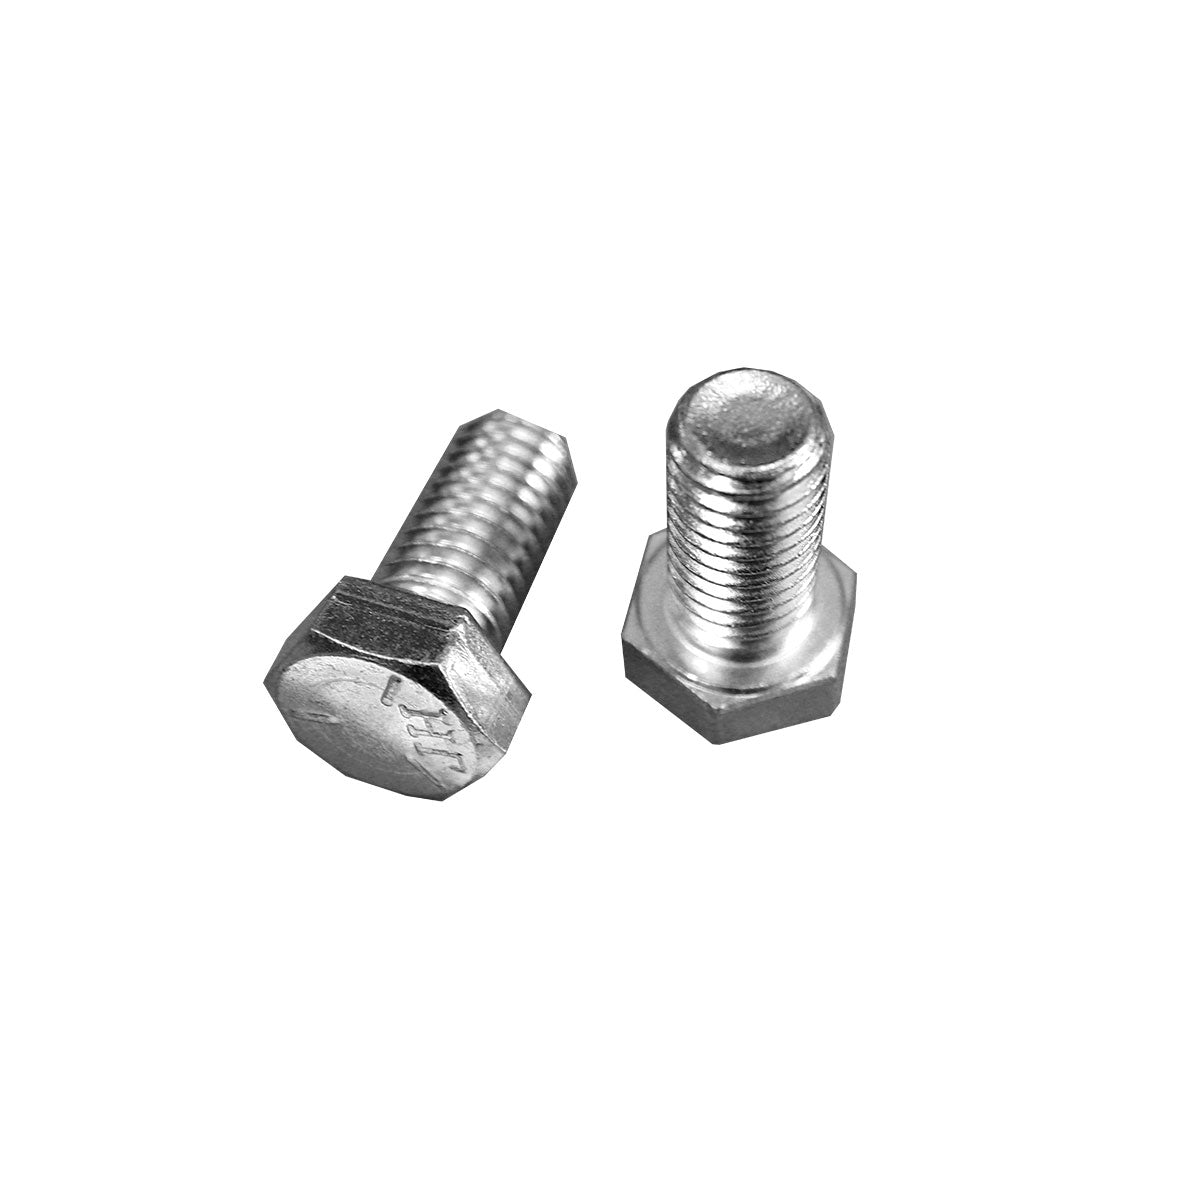 "AB-47-B Air Inlet Body Lug Bolt set 1/2""x1"" NCHT Hex Head - 23879/005"